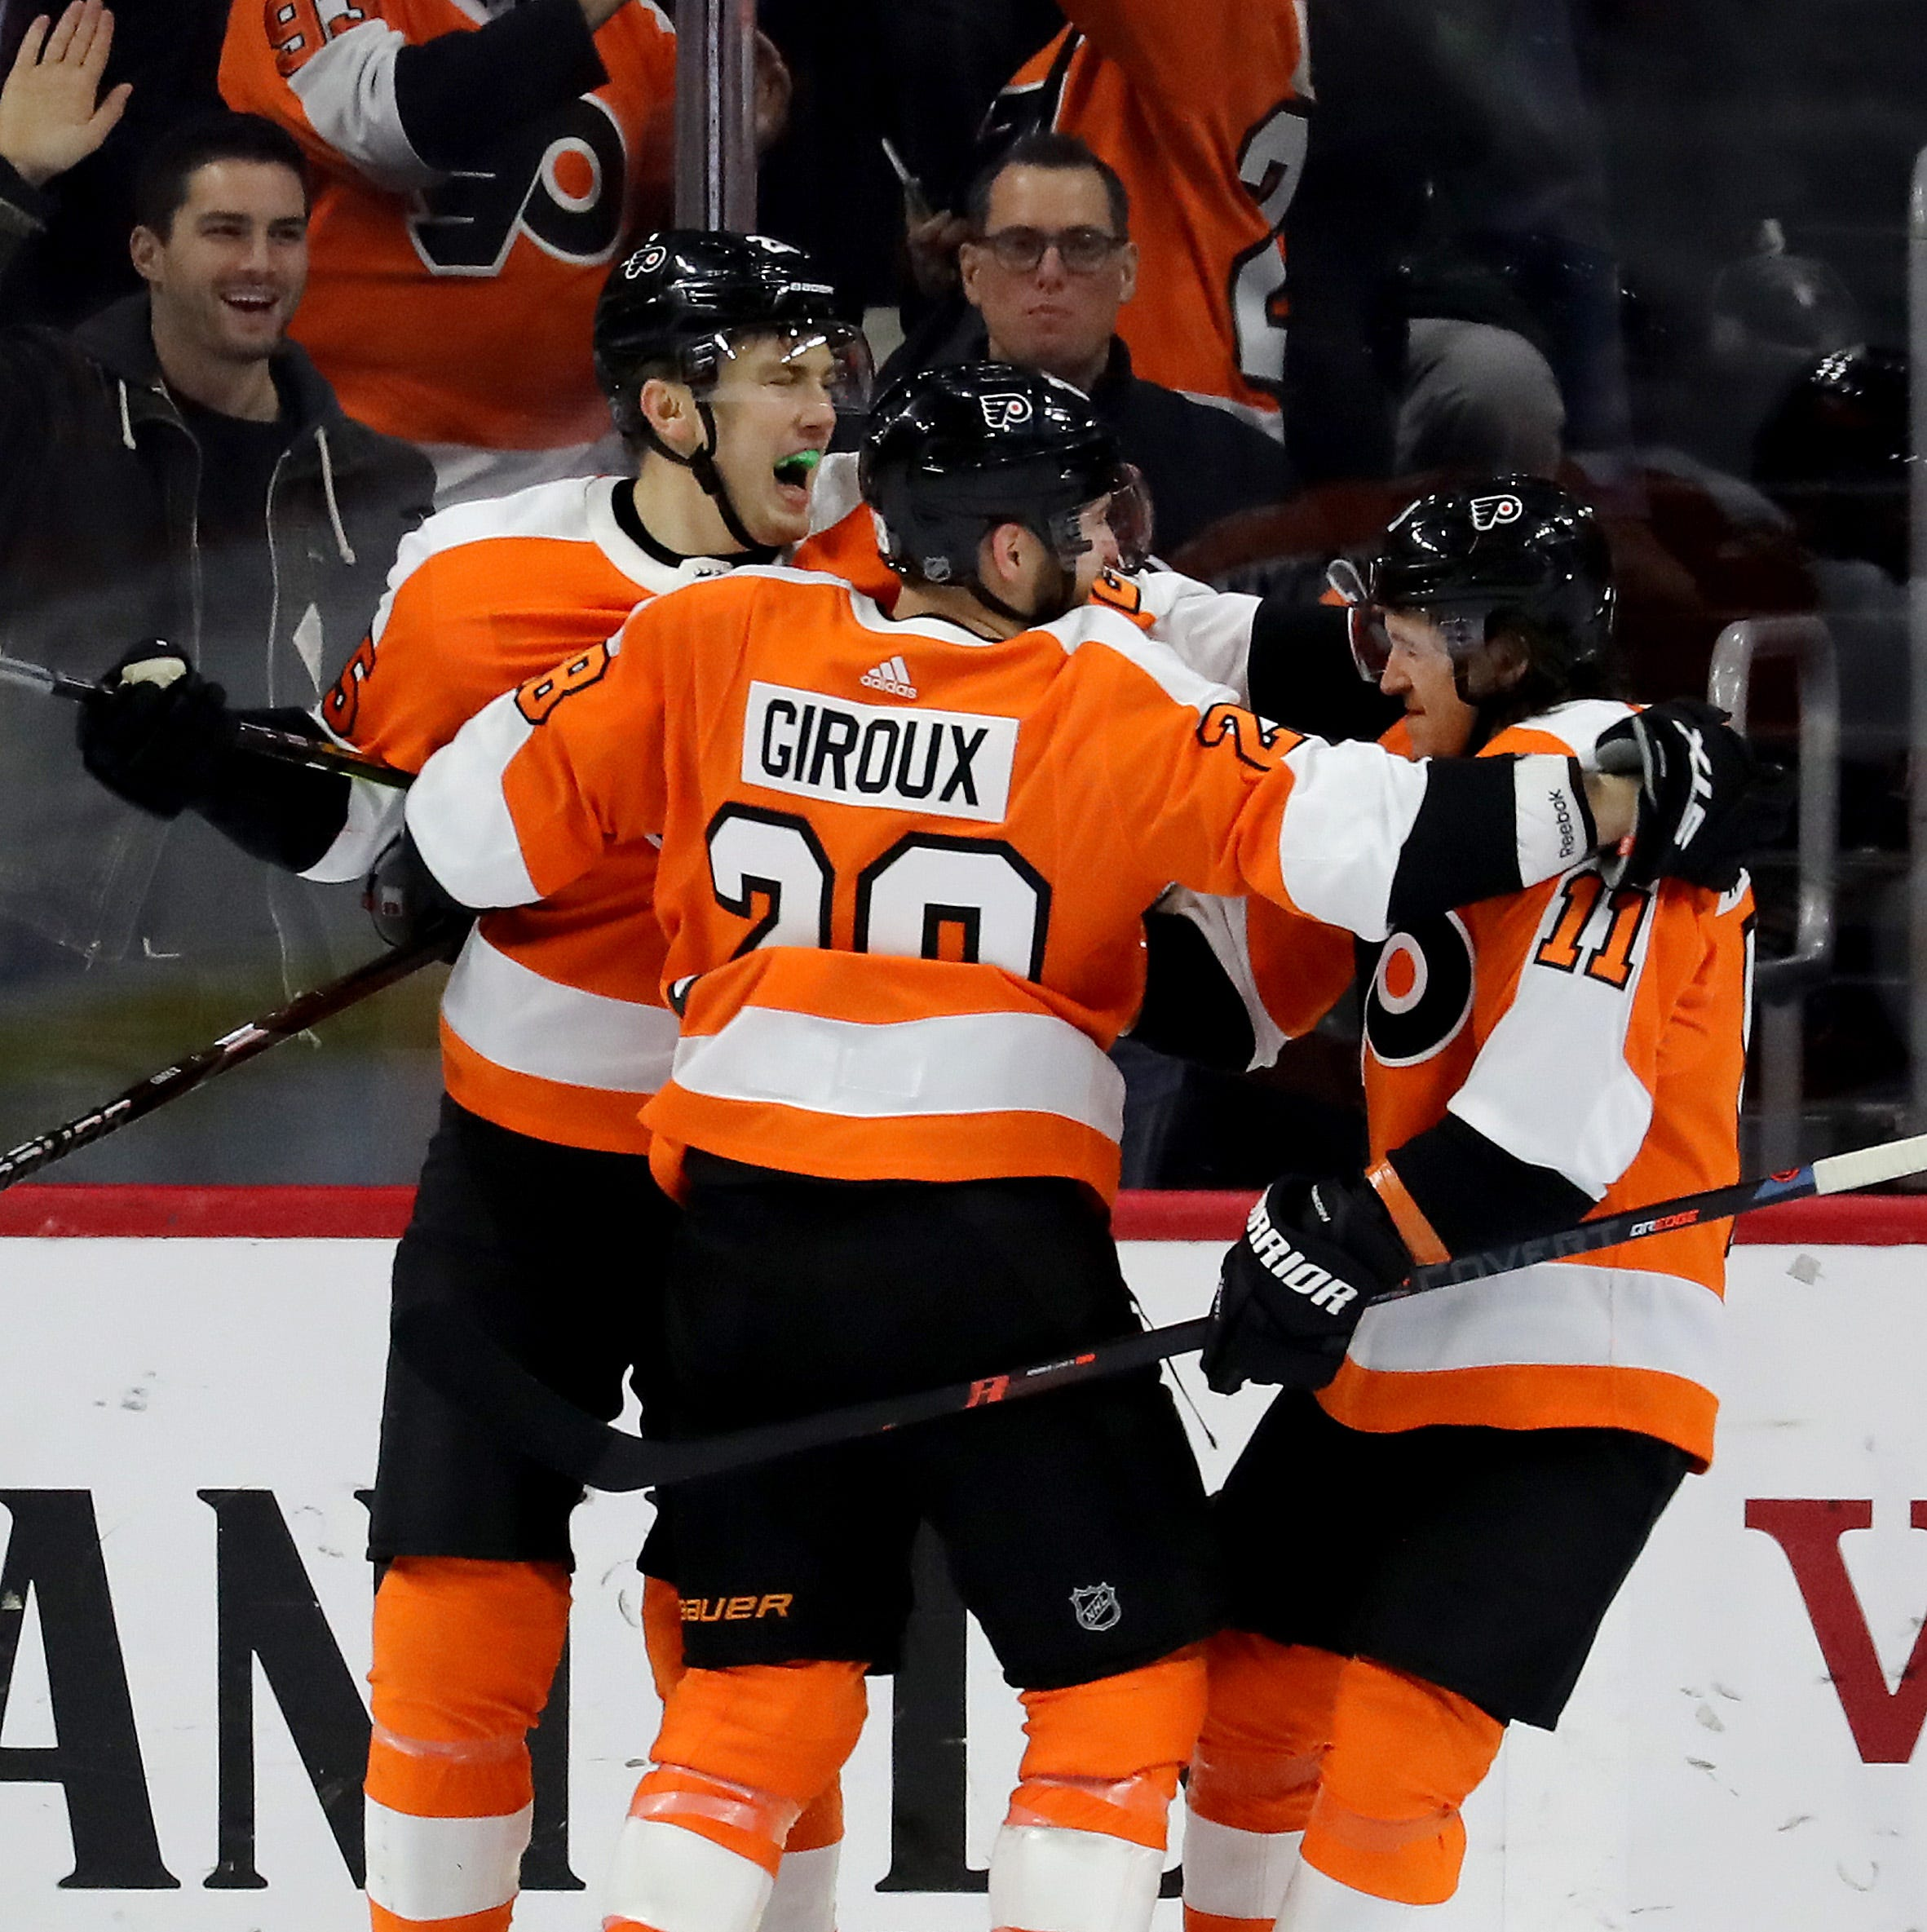 Claude Giroux's production not helping top line, so Flyers could change it up